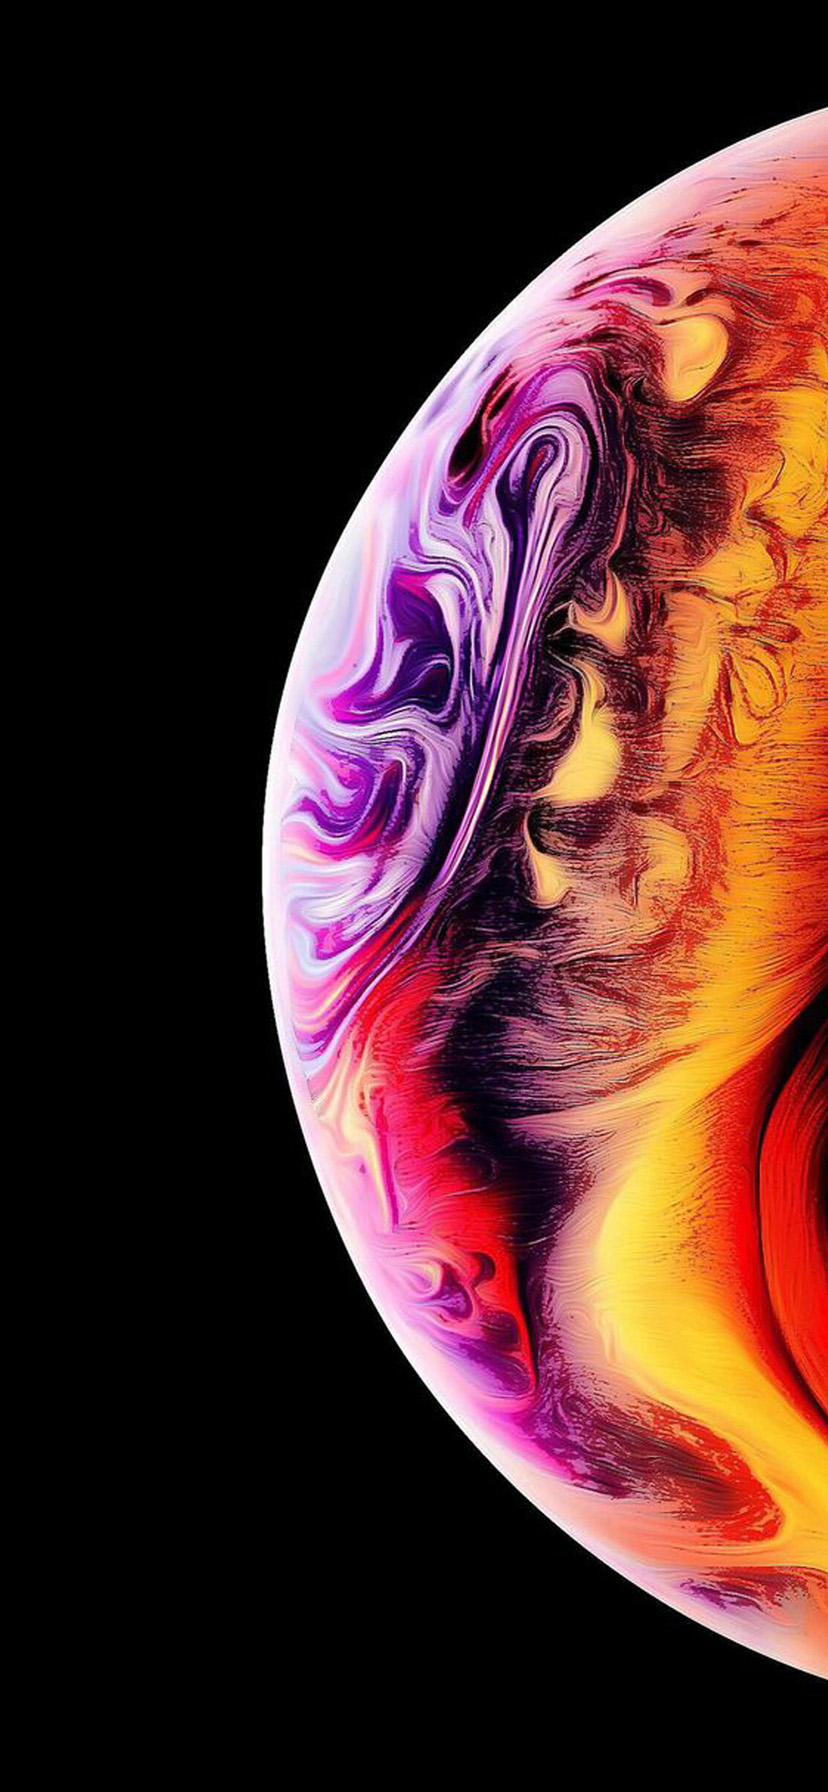 44 Iphone Xr Wallpapers Download Free Iphoneheat